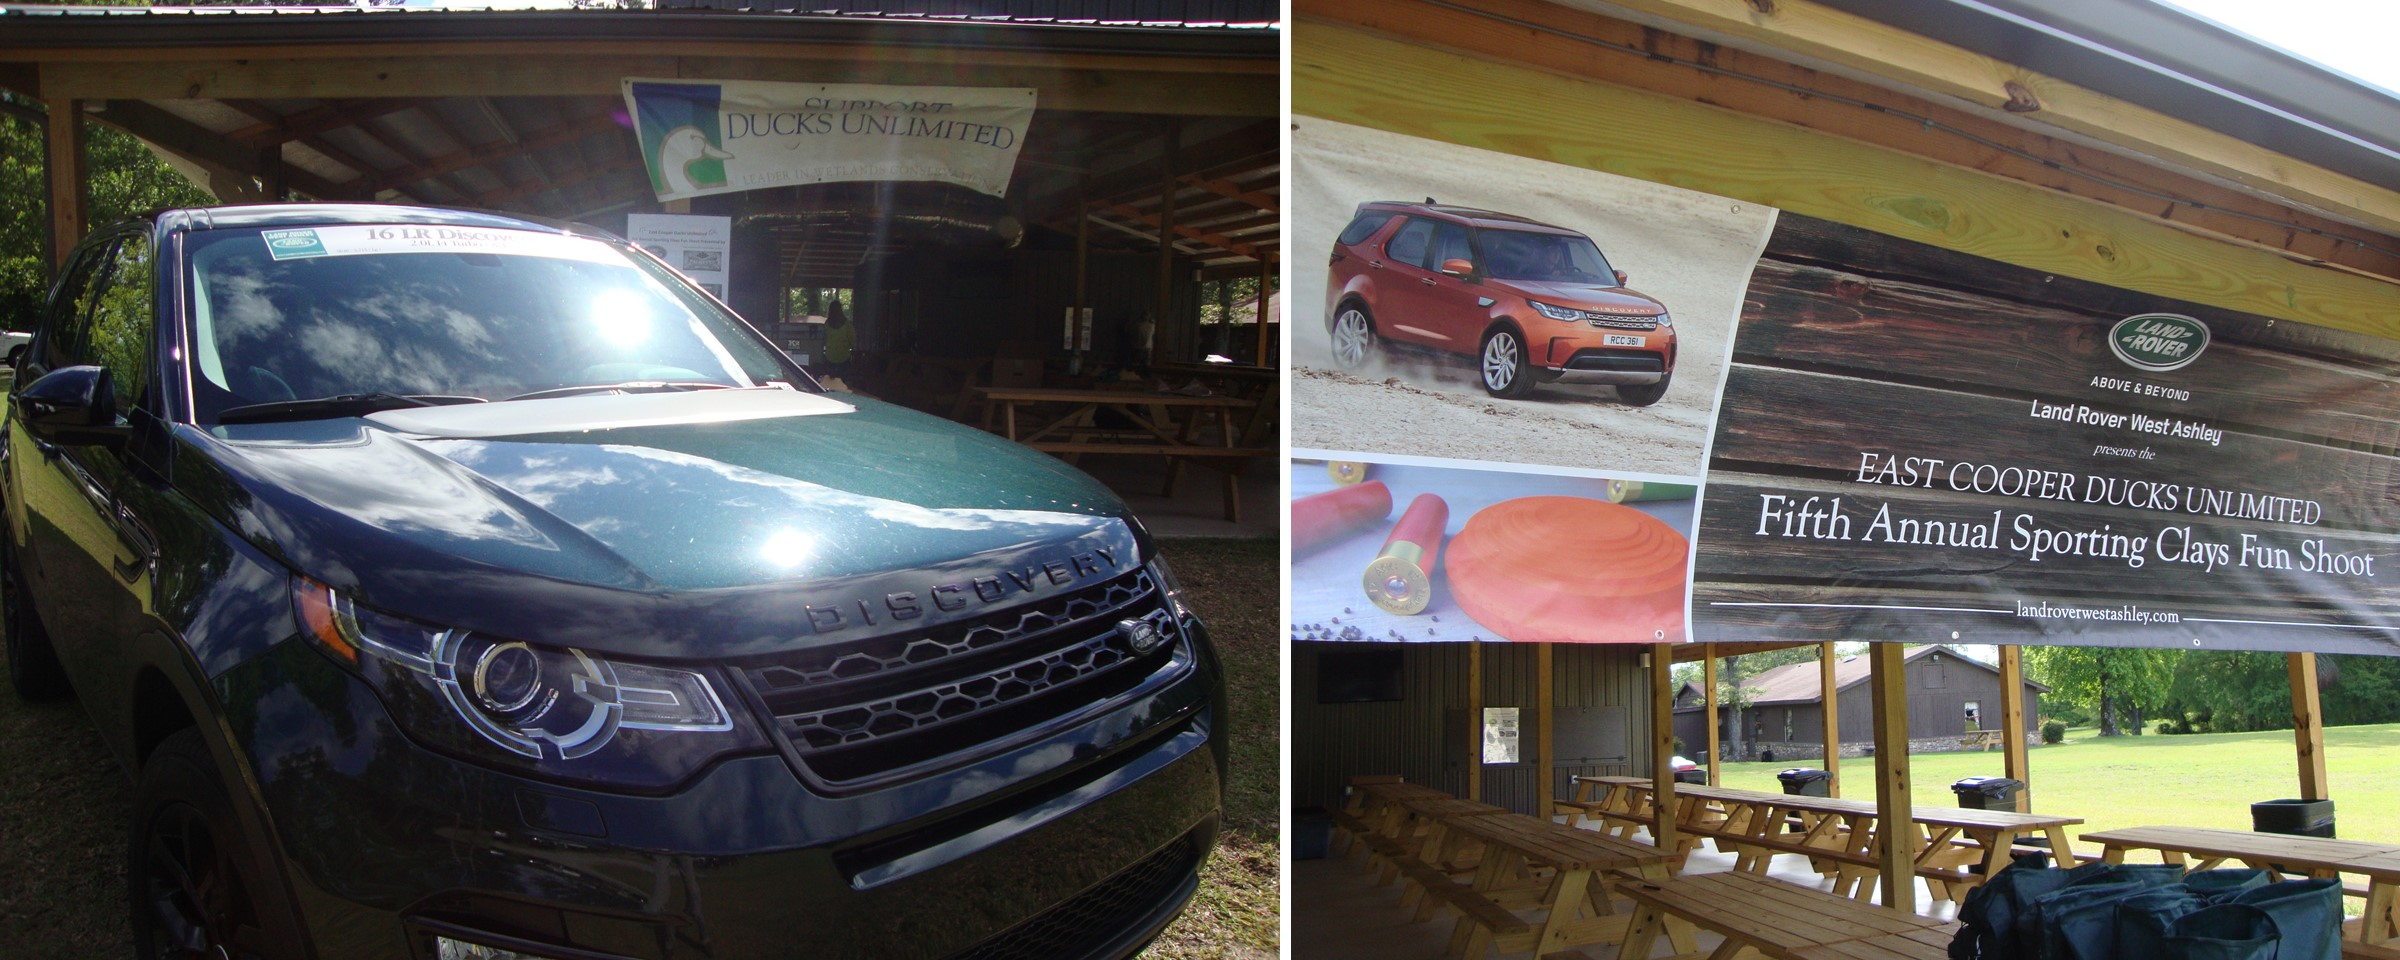 Land Rover West Ashley Supports East Cooper Ducks Unlimited Fifth